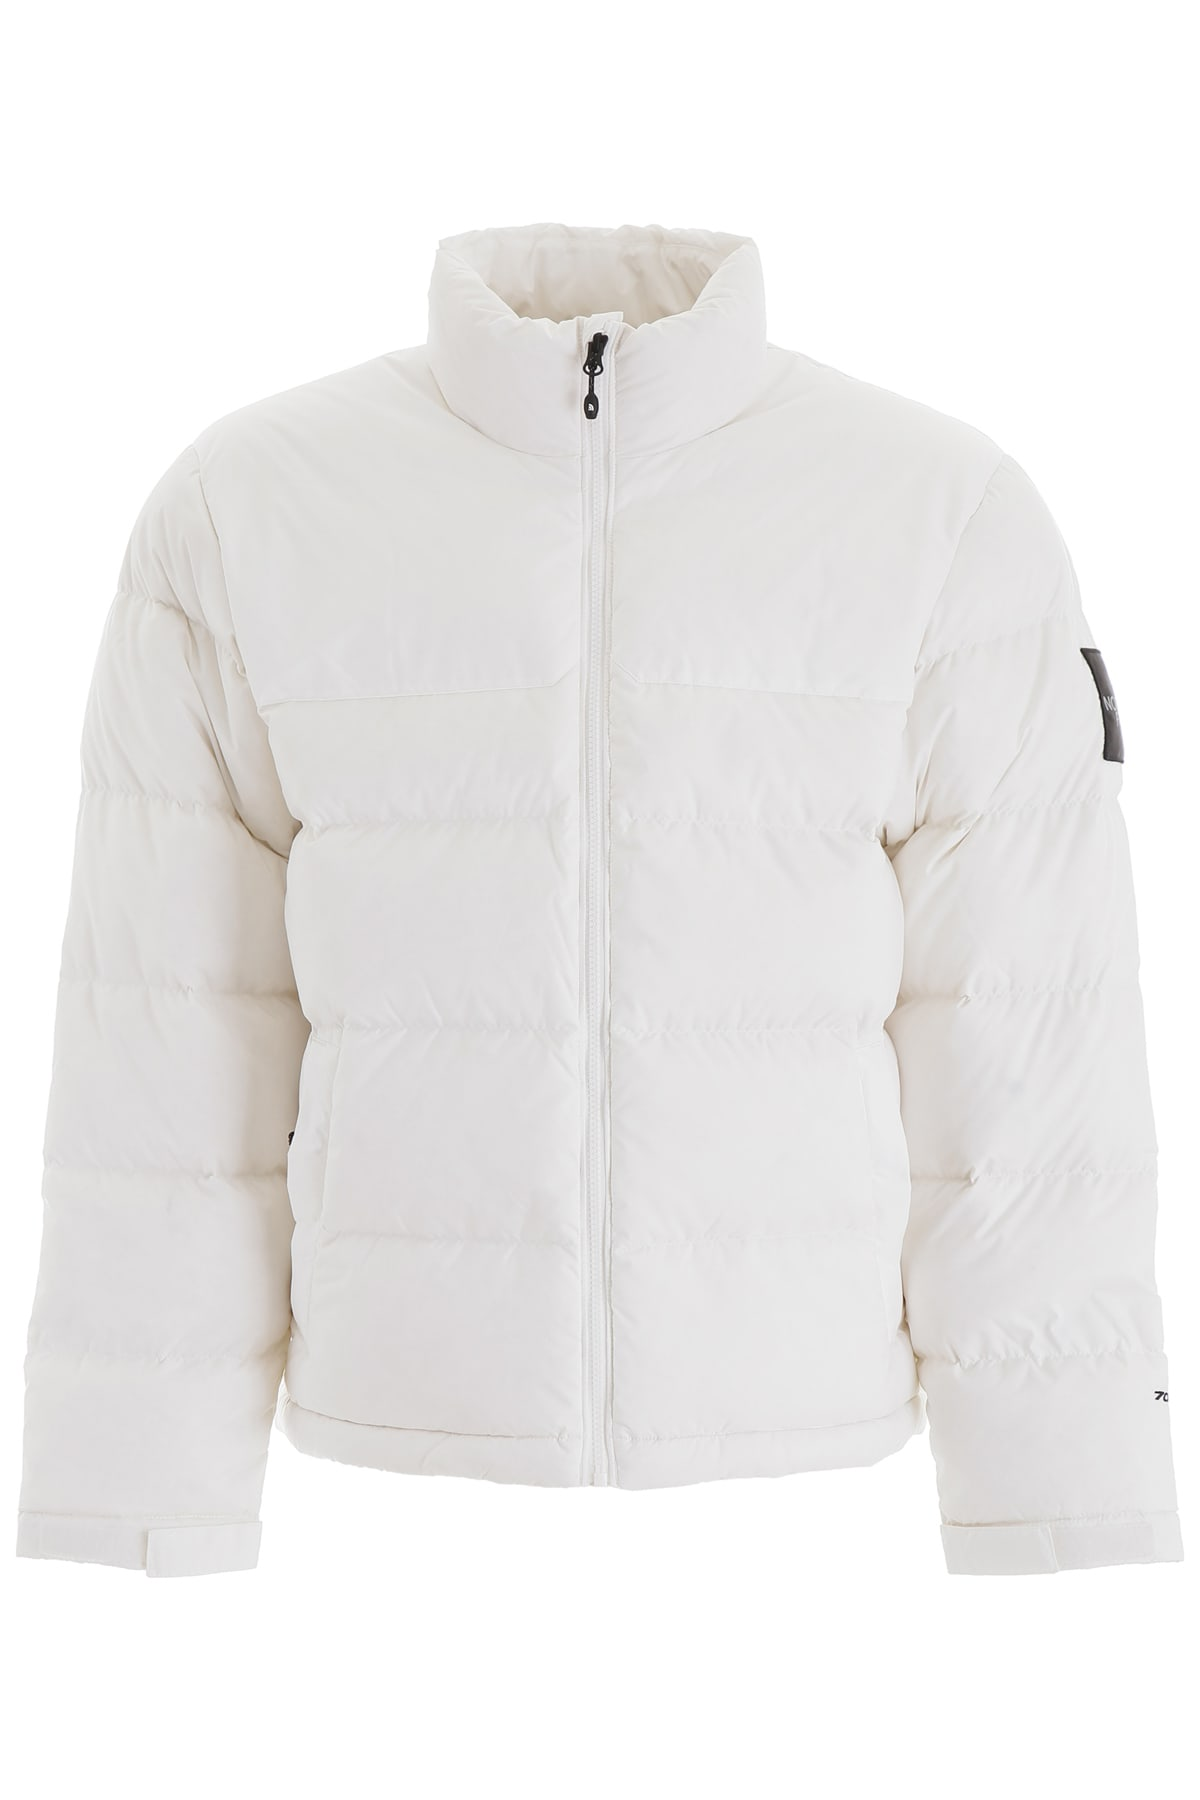 30541163a 1992 Nuptse Puffer Jacket in White (White)